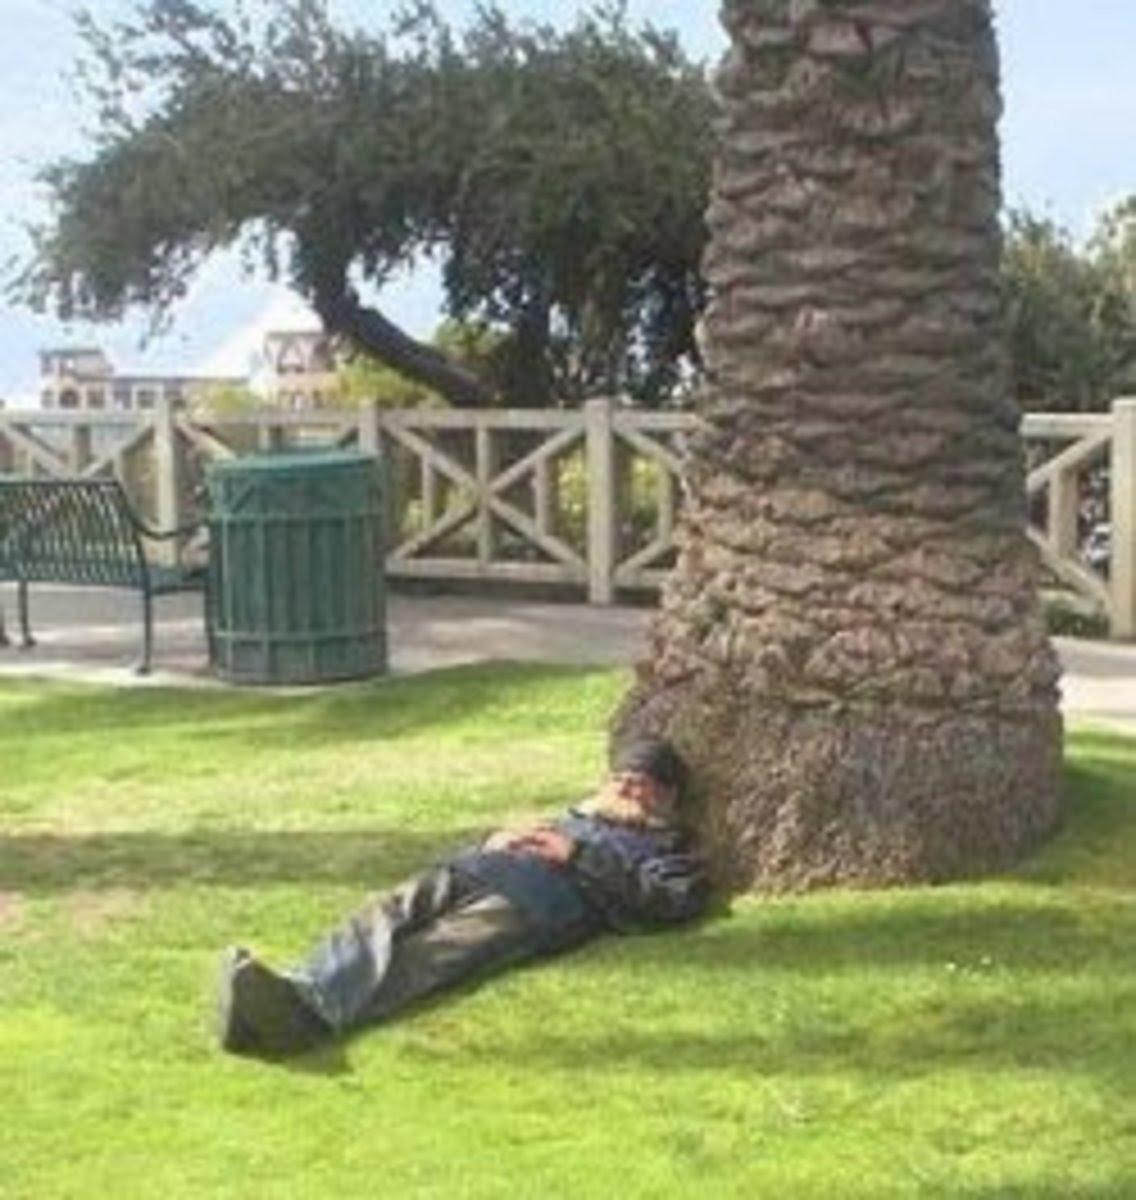 Homeless man sleeping under a palm tree in Santa Monica